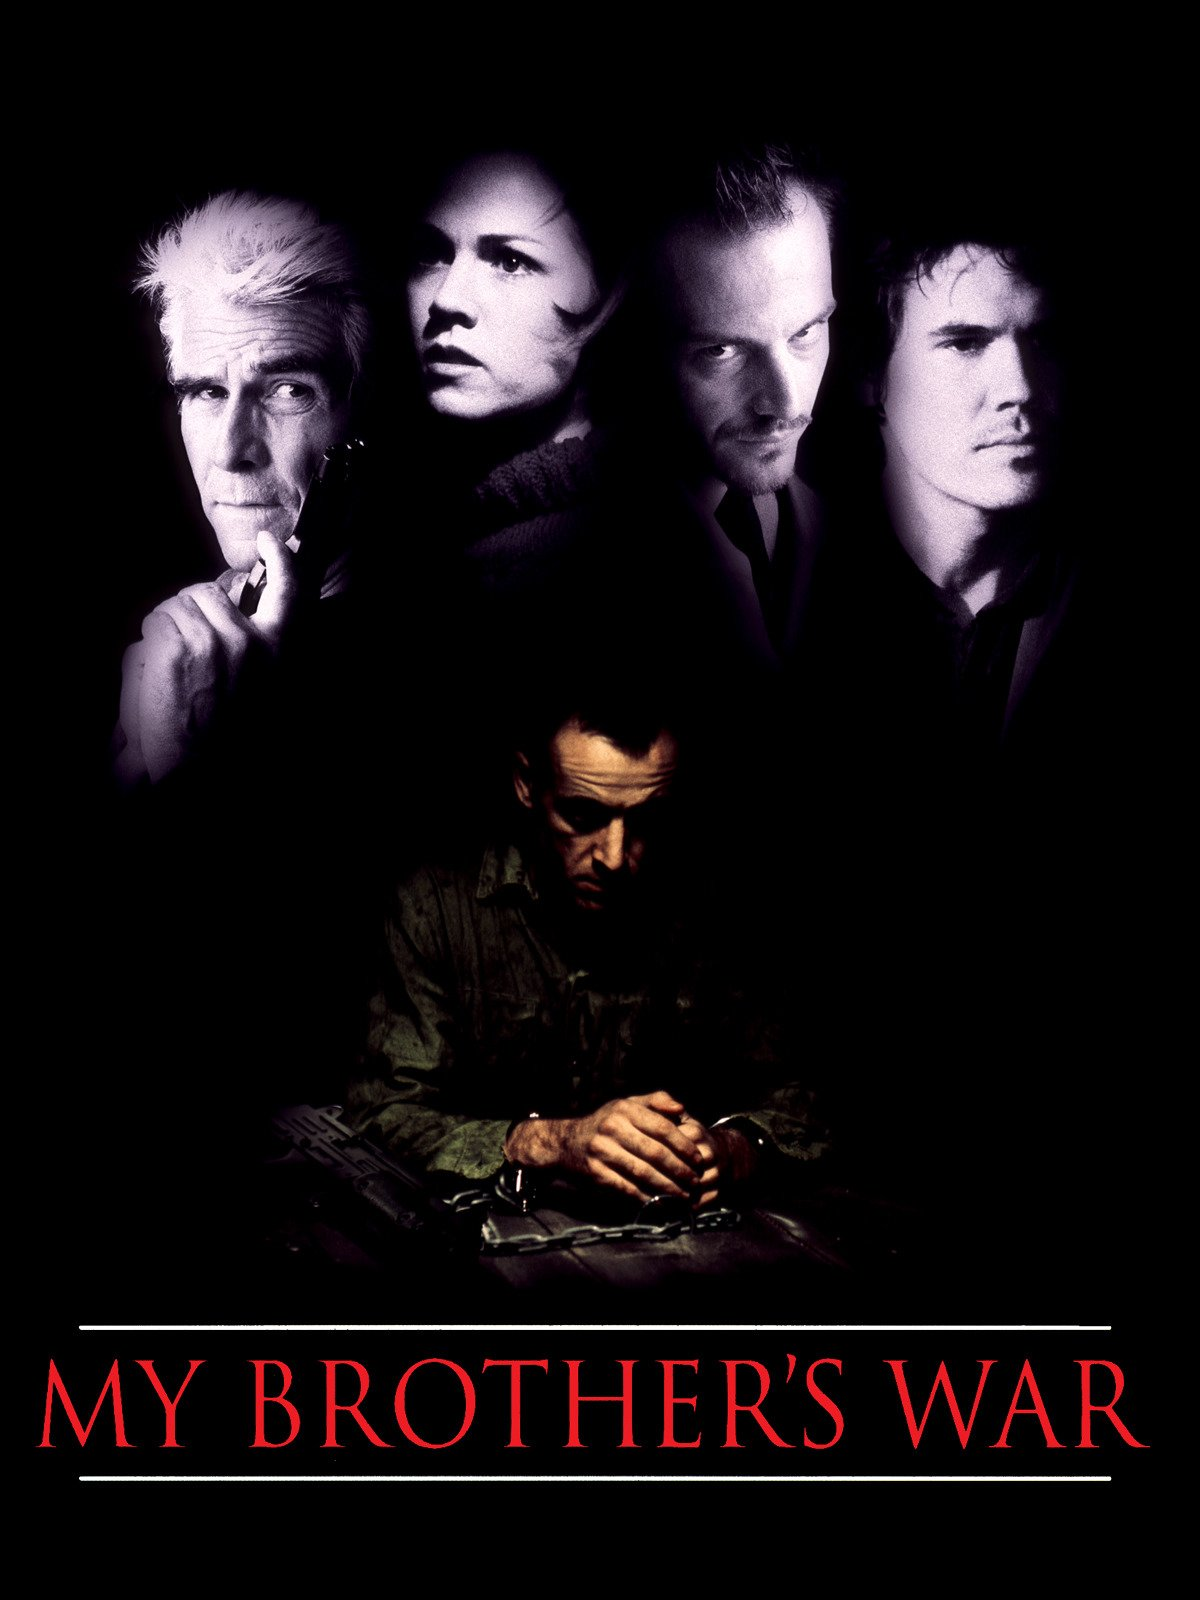 My Brother's War